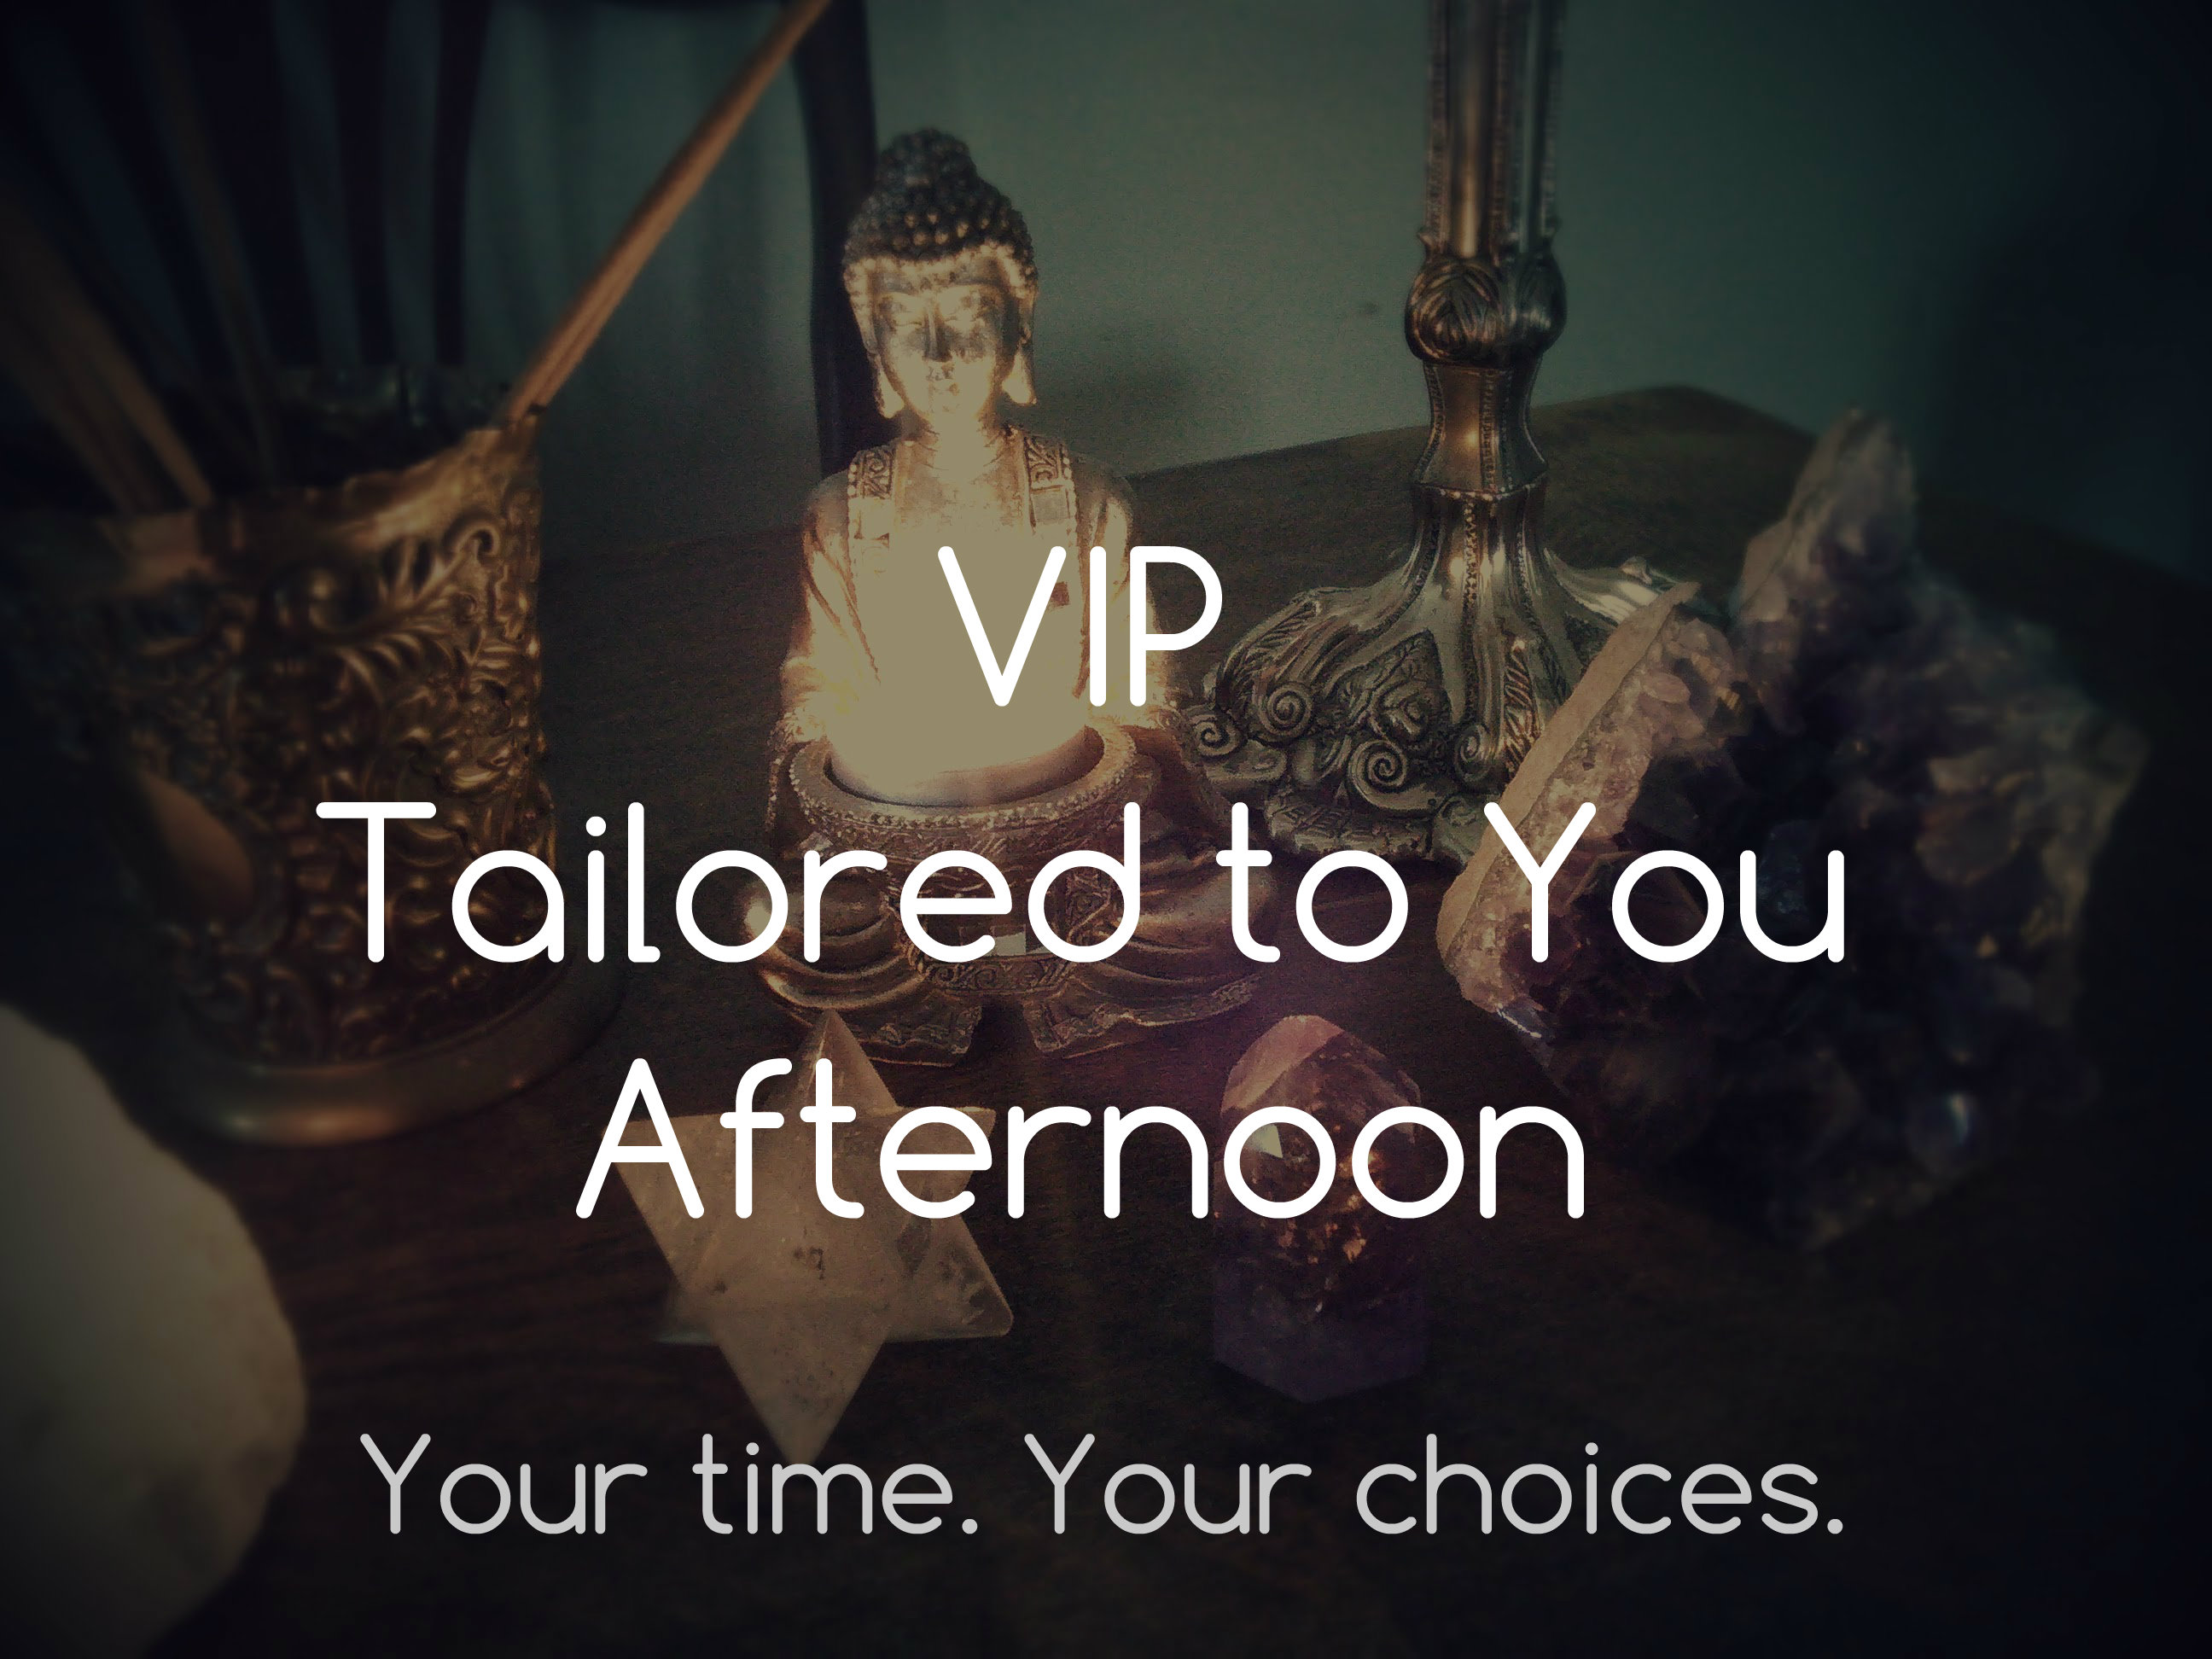 VIP Tailored to You Afternoon with Rachel Keene